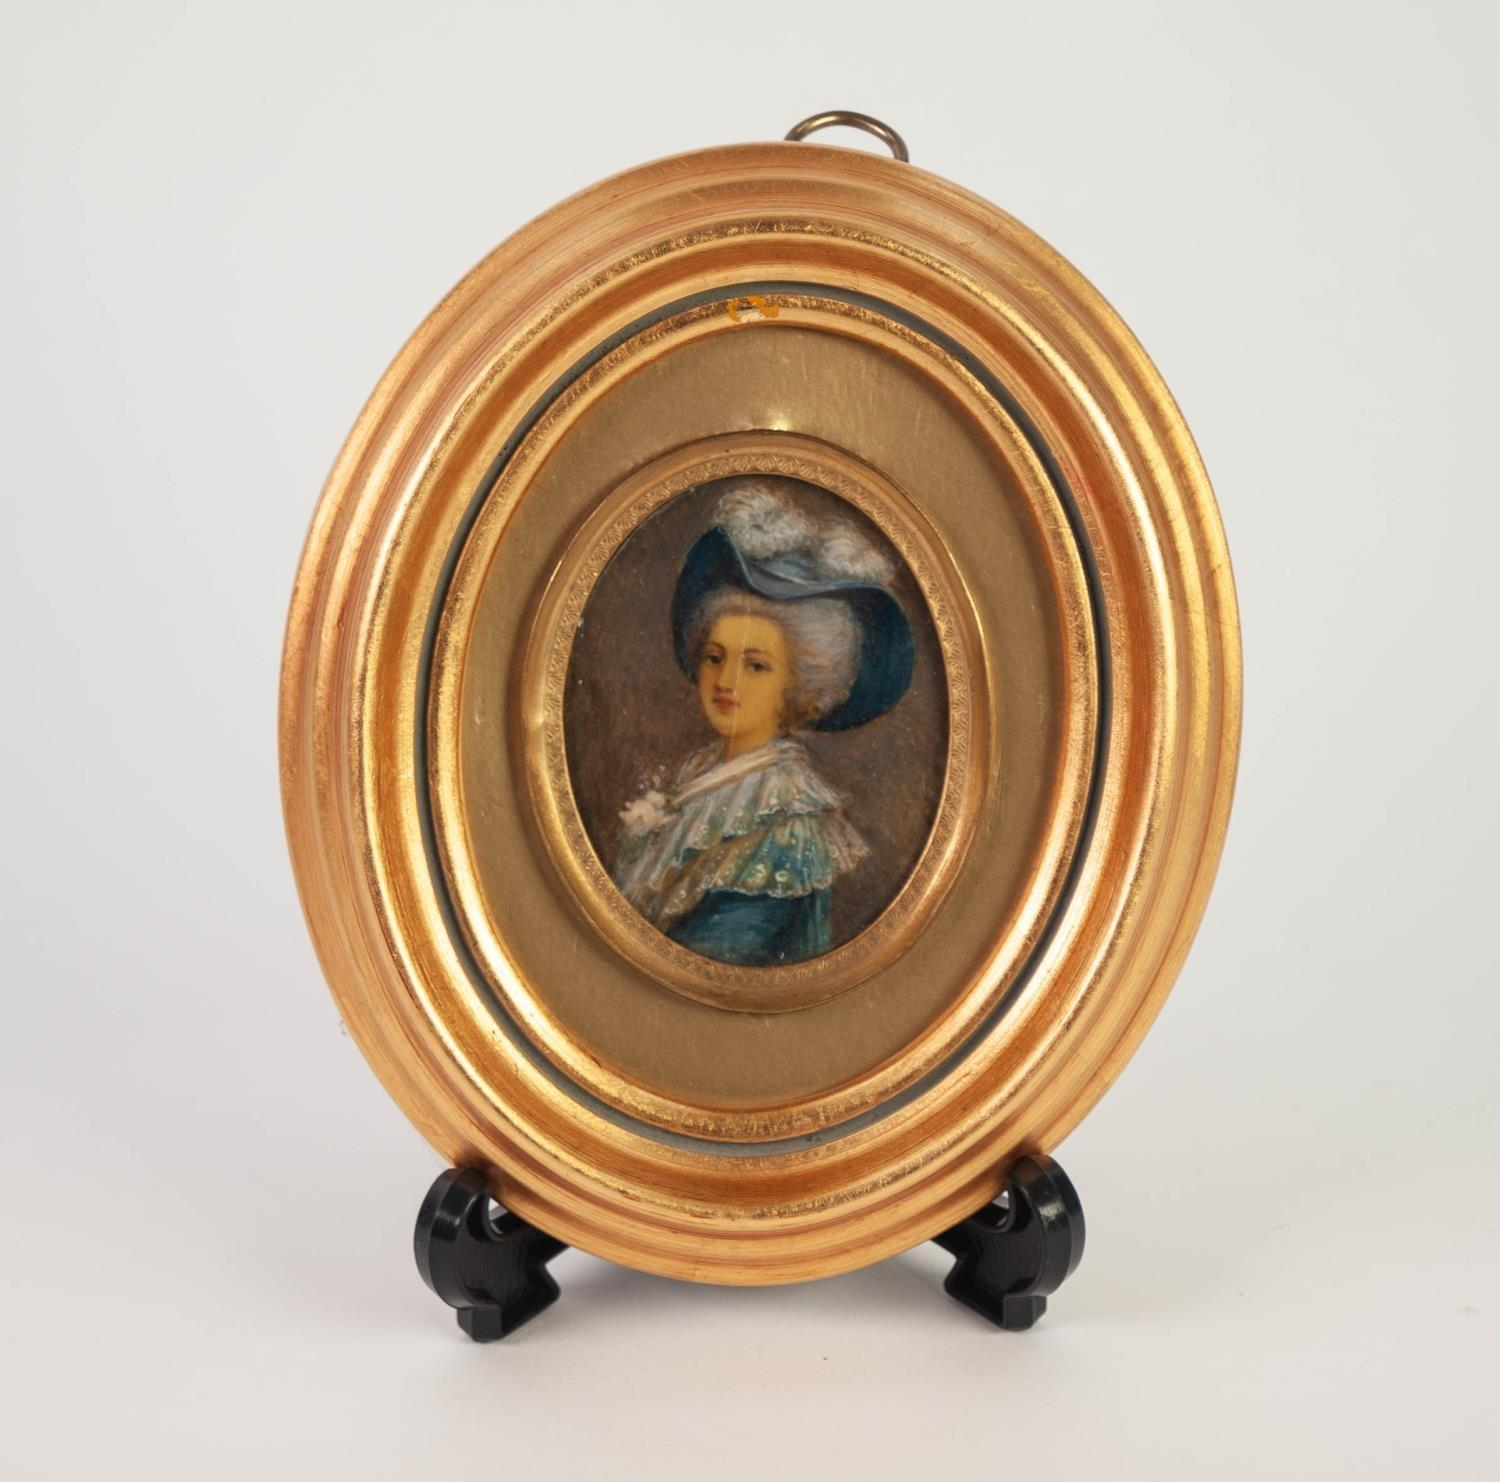 Lot 693 - OVAL LATE 18th CENTURY MINIATURE OIL PAINTING ON IVORY of a lady in broad blue hat with ostrich